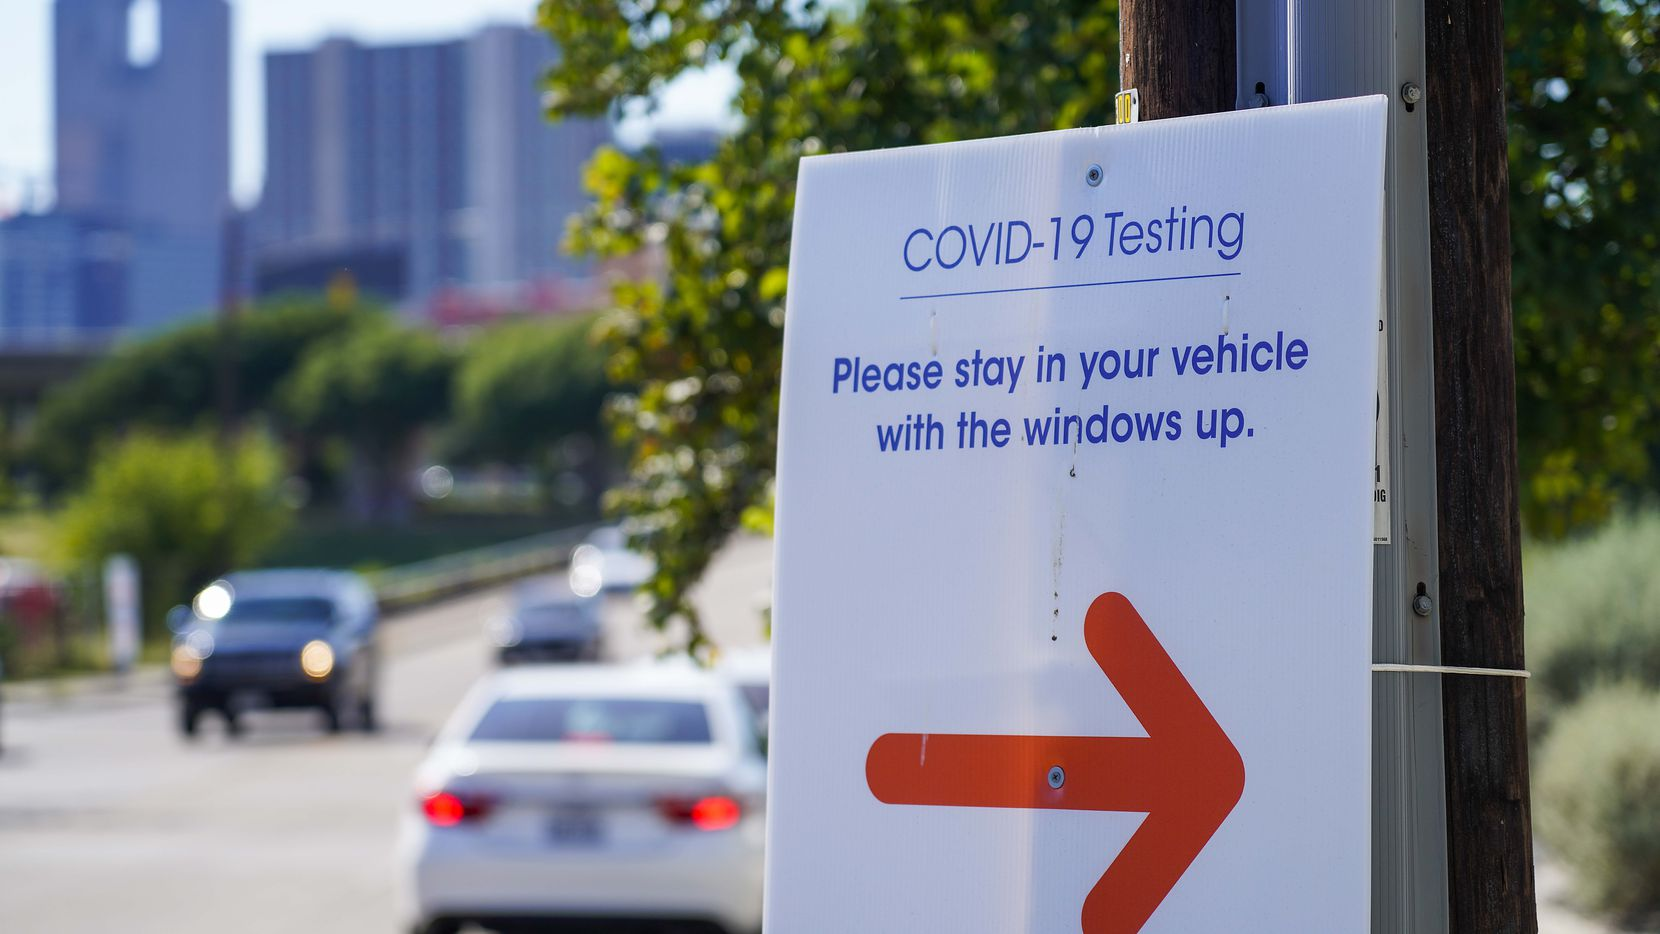 Cars line up along South Malcolm X Boulevard for a COVID-19 testing facility at CitySquare on June 17  in Dallas. The county is now offering free shelter for those with mild cases of COVID-19 who cannot isolate from family members.